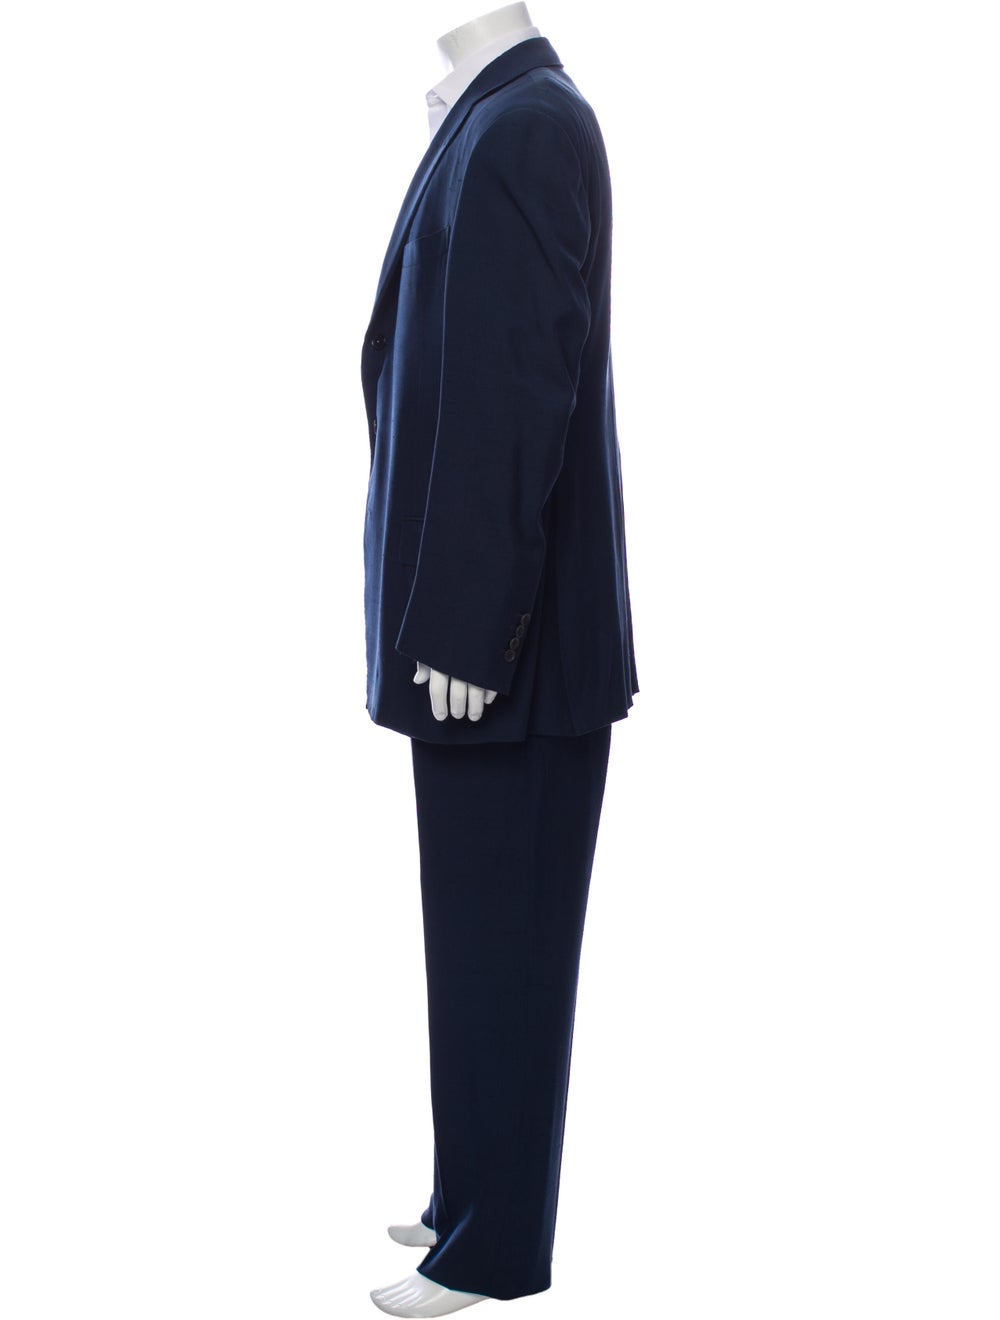 Silk Two-Piece Suit - image 2